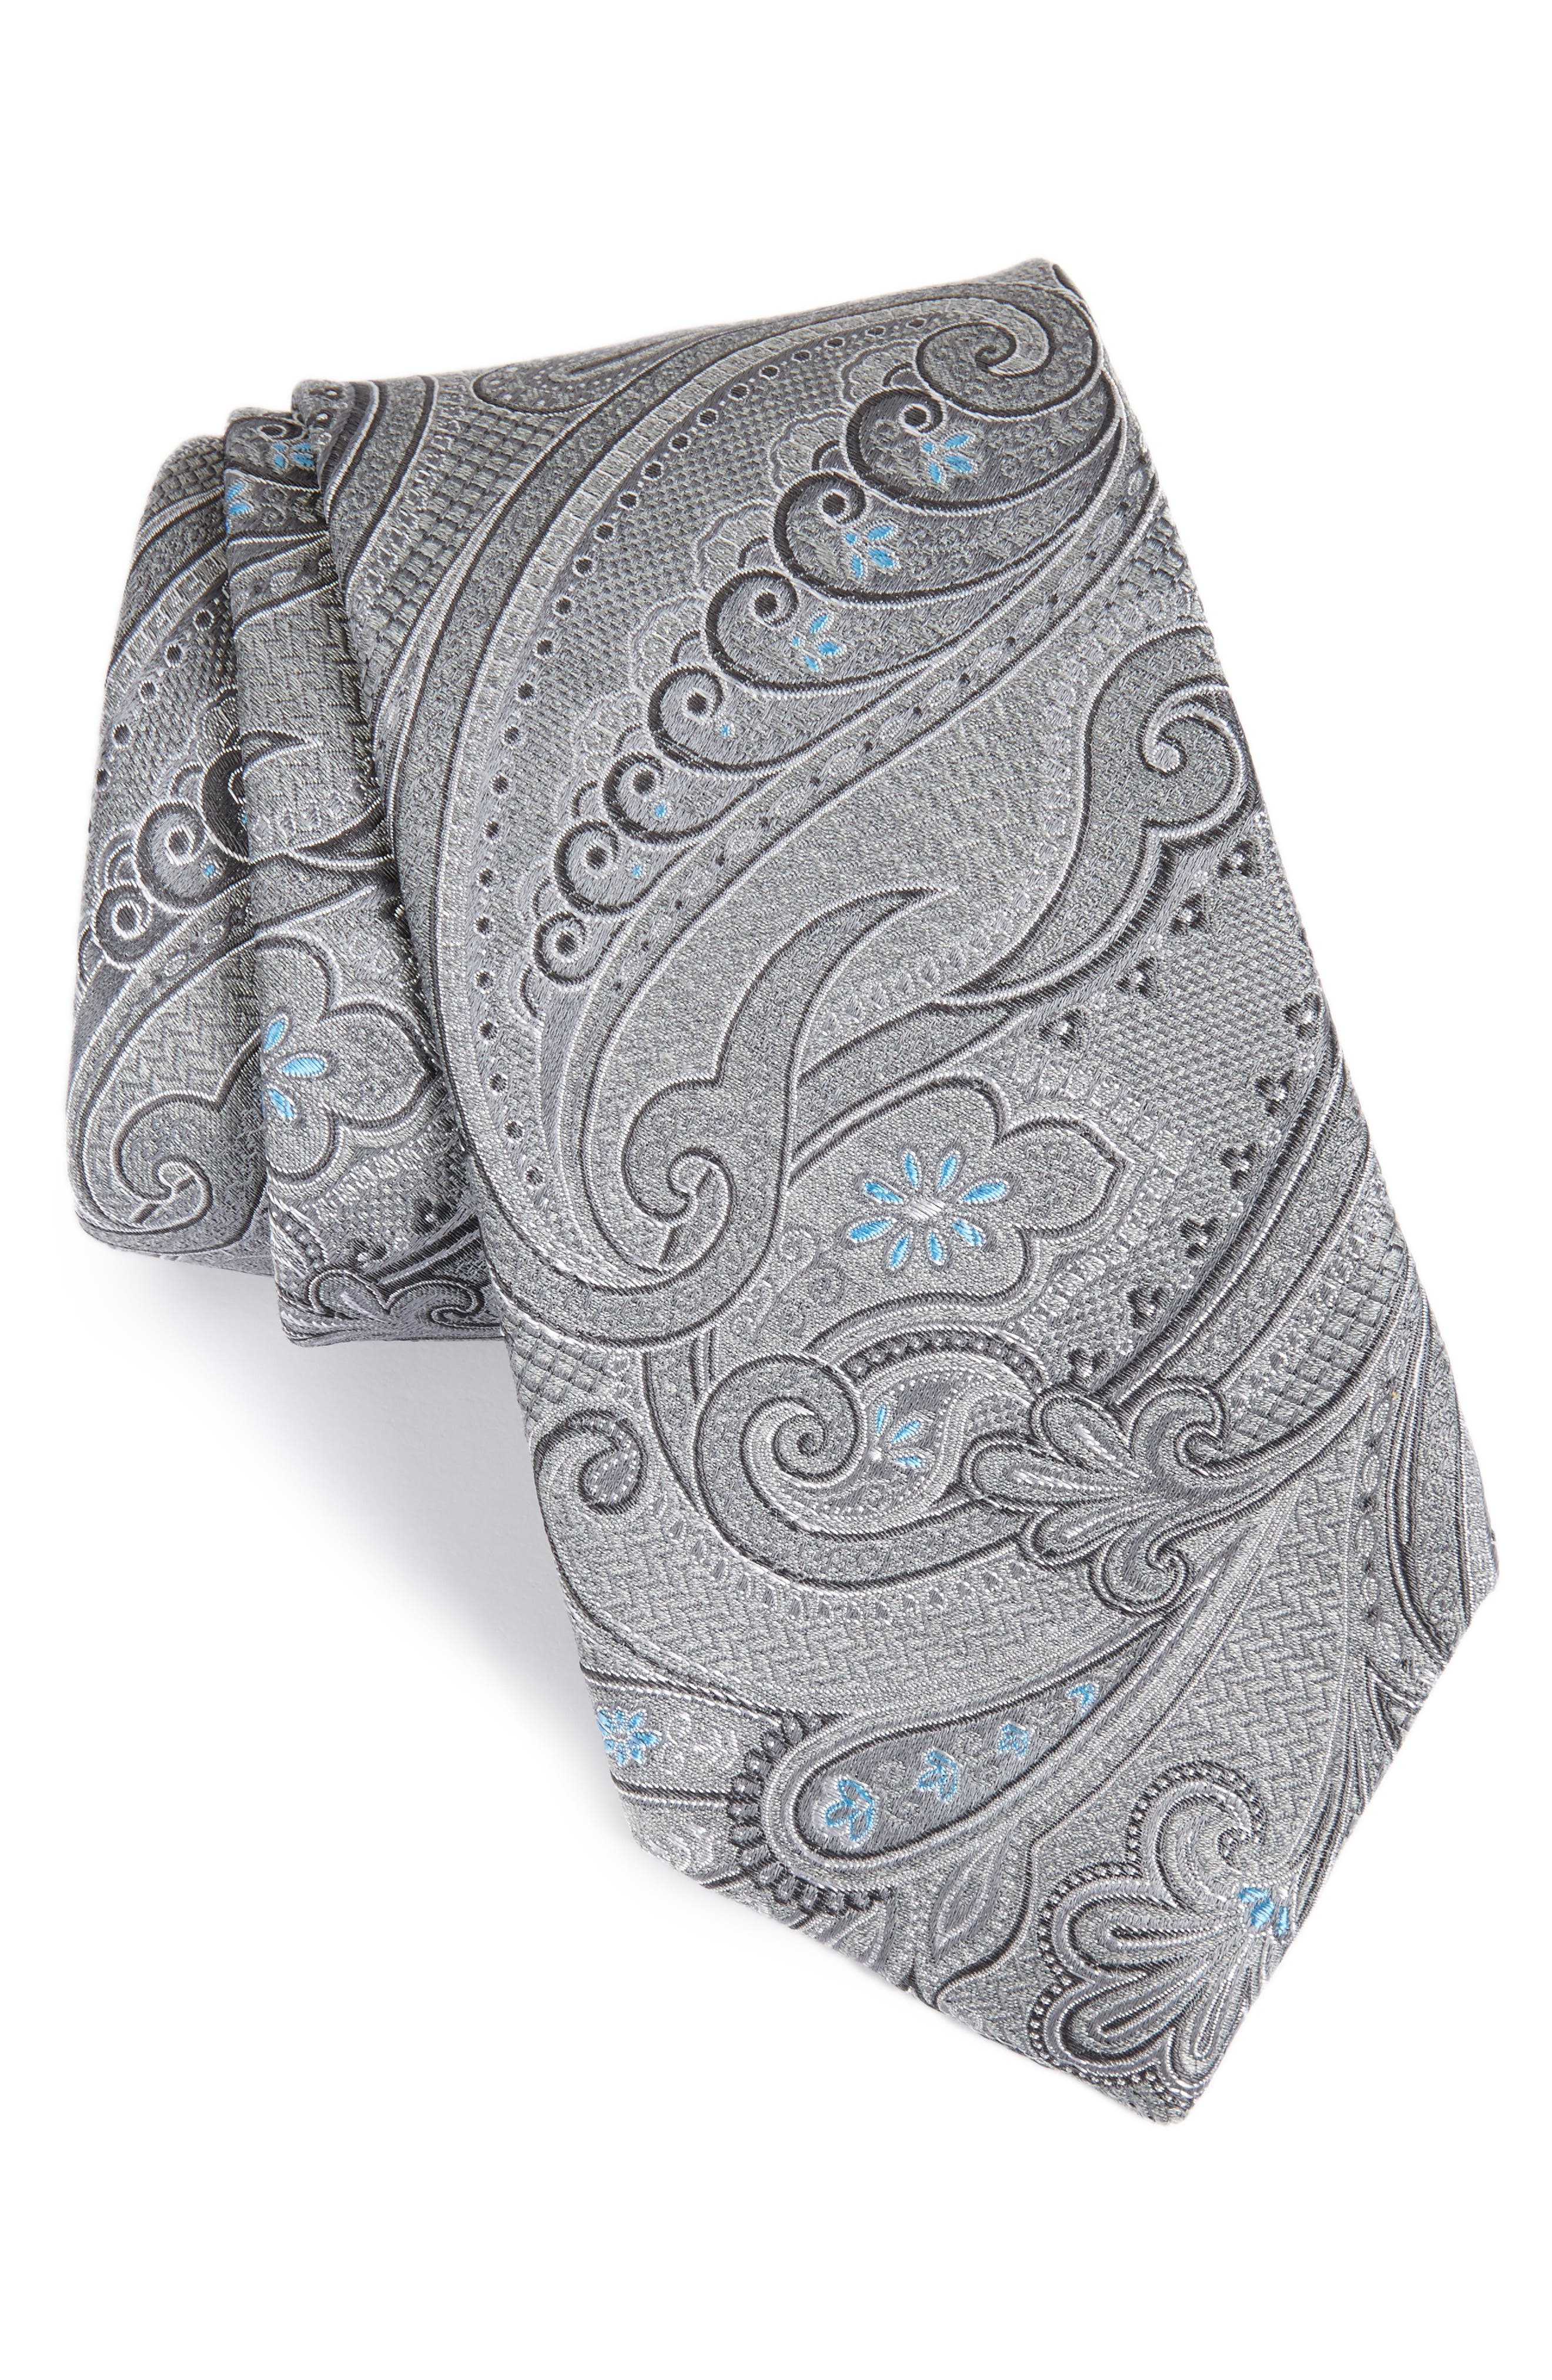 Bushnell Paisley Silk Blend Tie,                             Main thumbnail 1, color,                             Charcoal